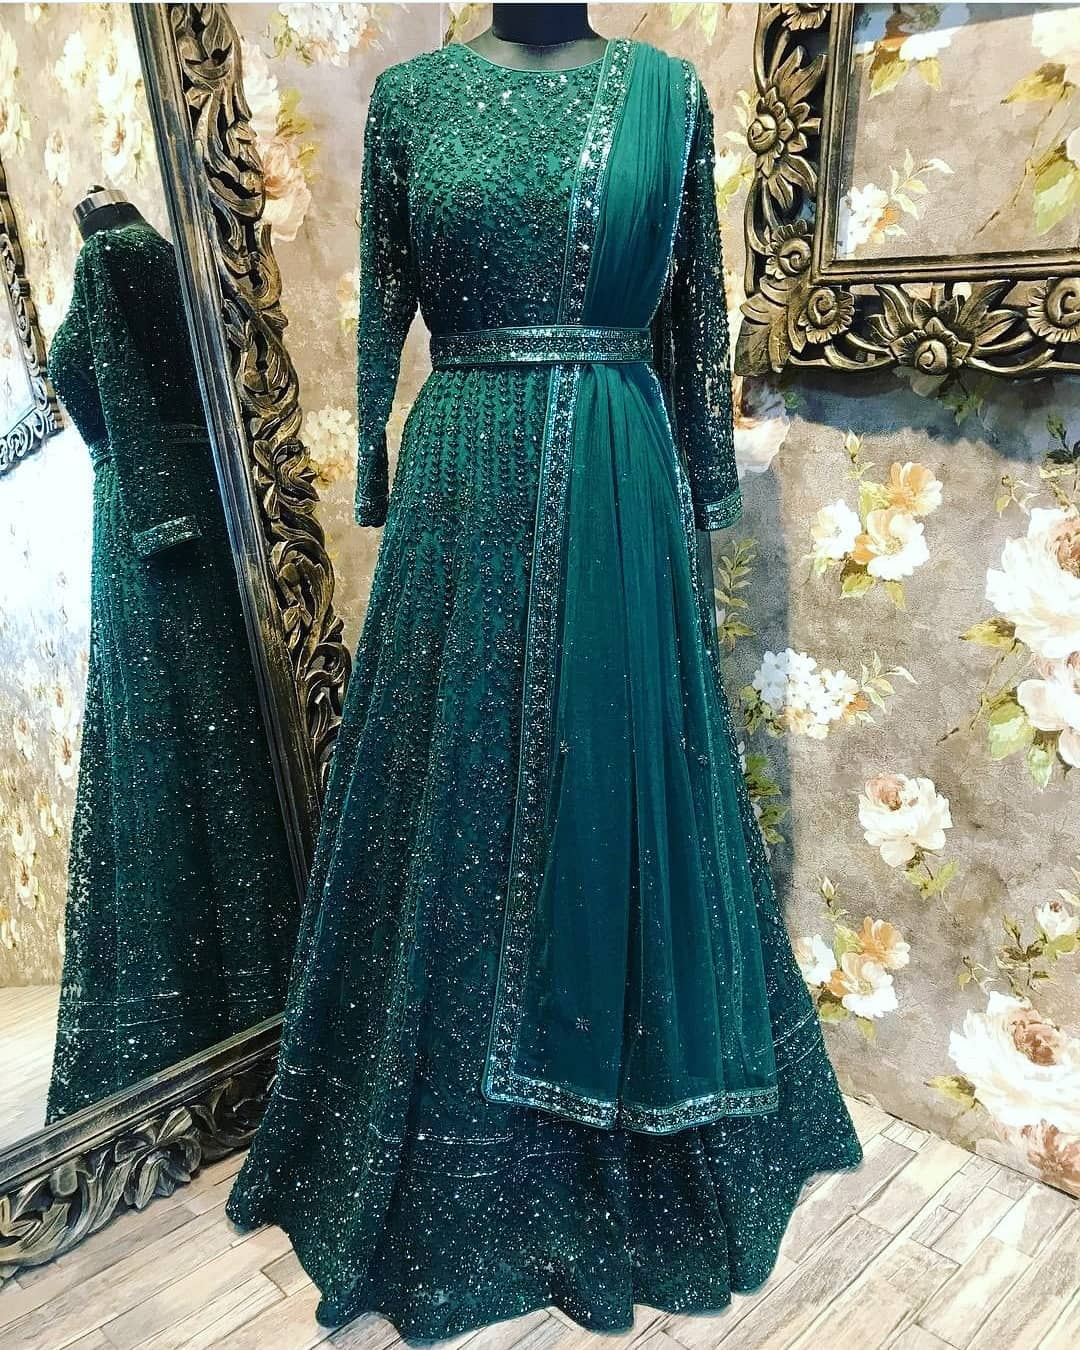 20+ Indian Bridesmaids Outfits Ideas 2020